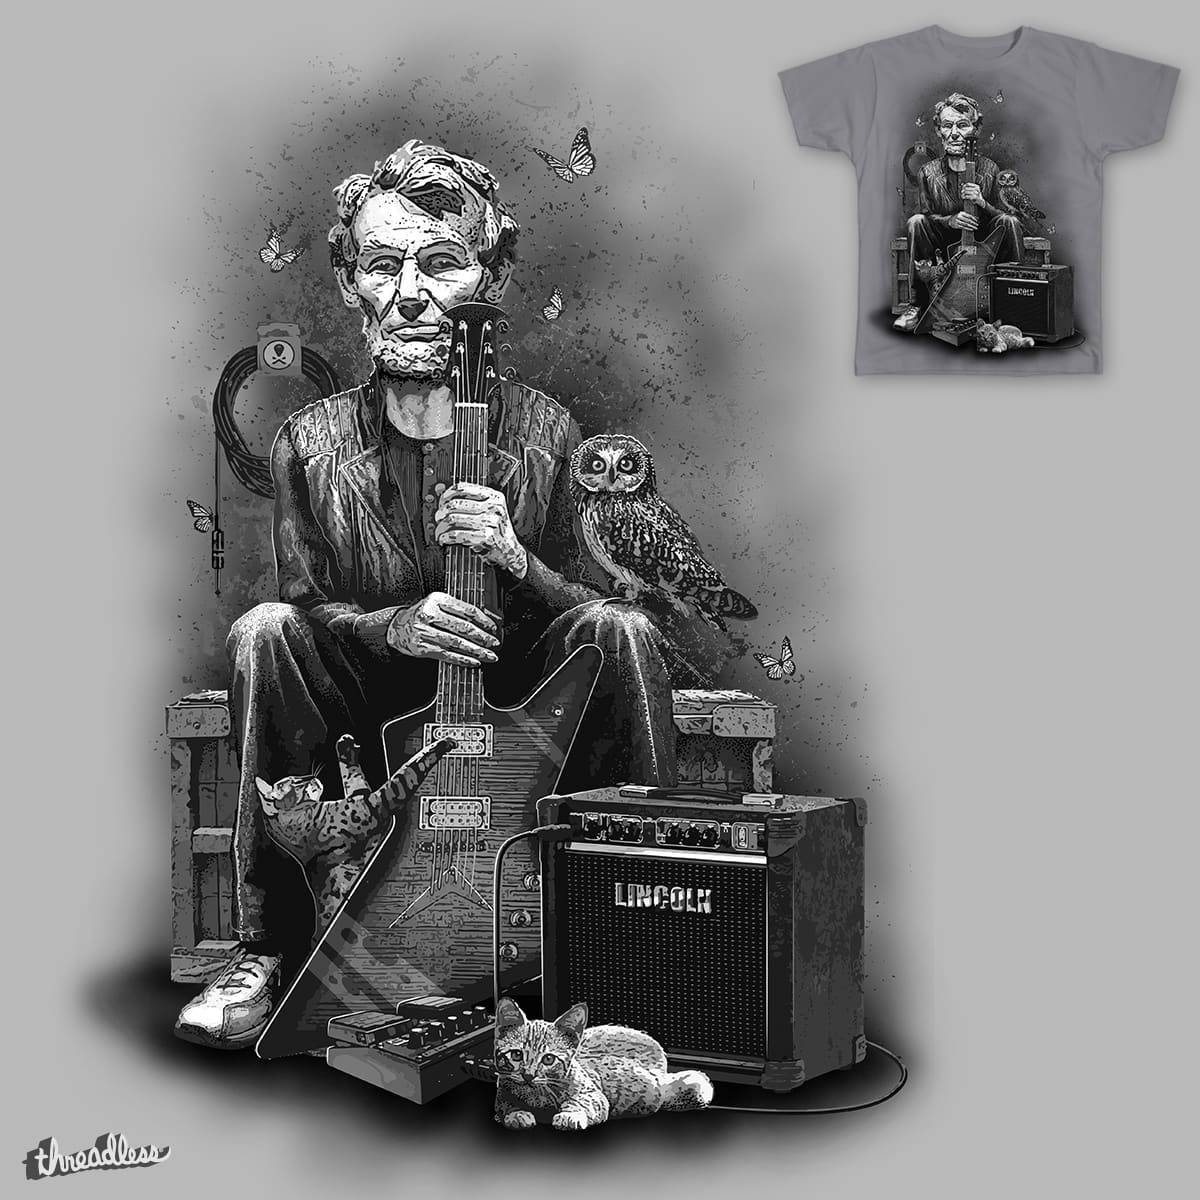 THE GUITARIST by NARNIAZ on Threadless